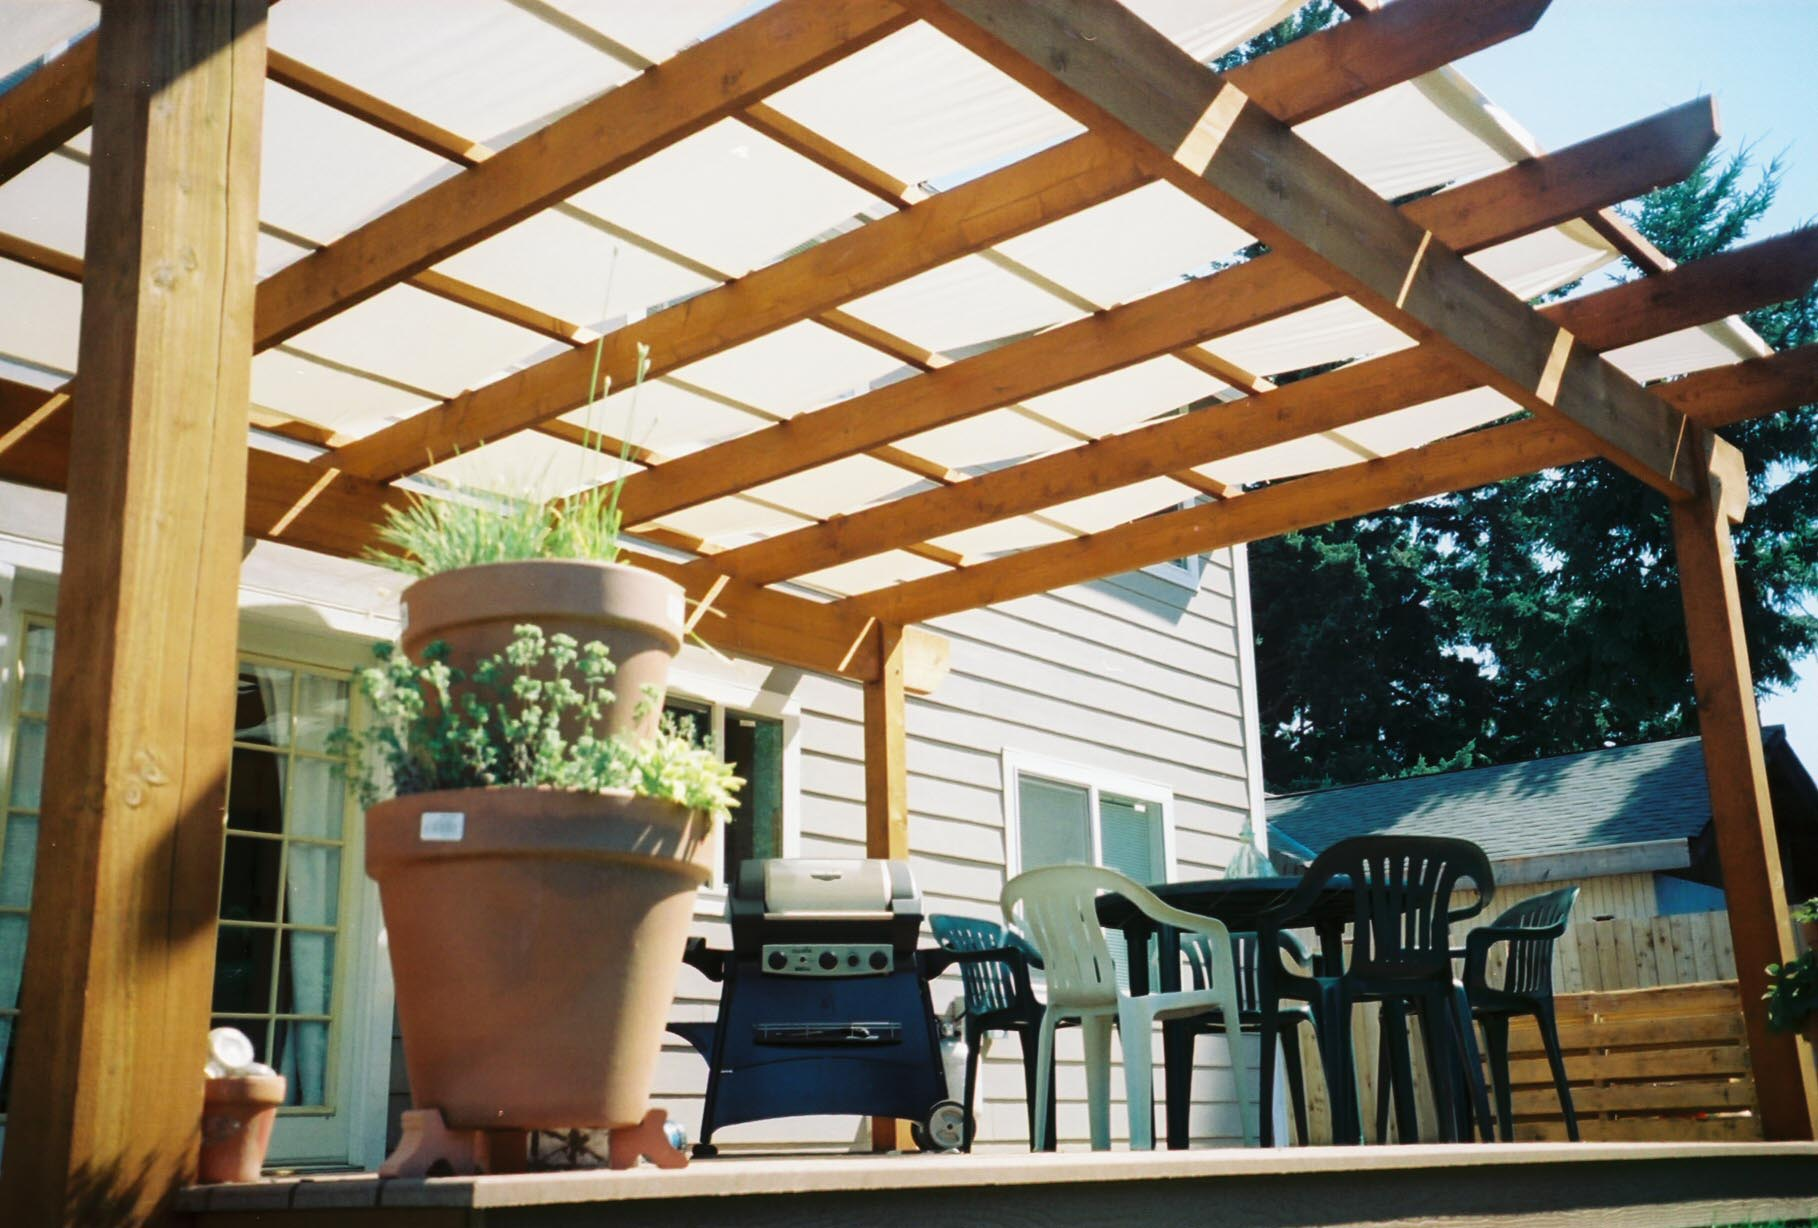 Roof Coverings for Pergolas